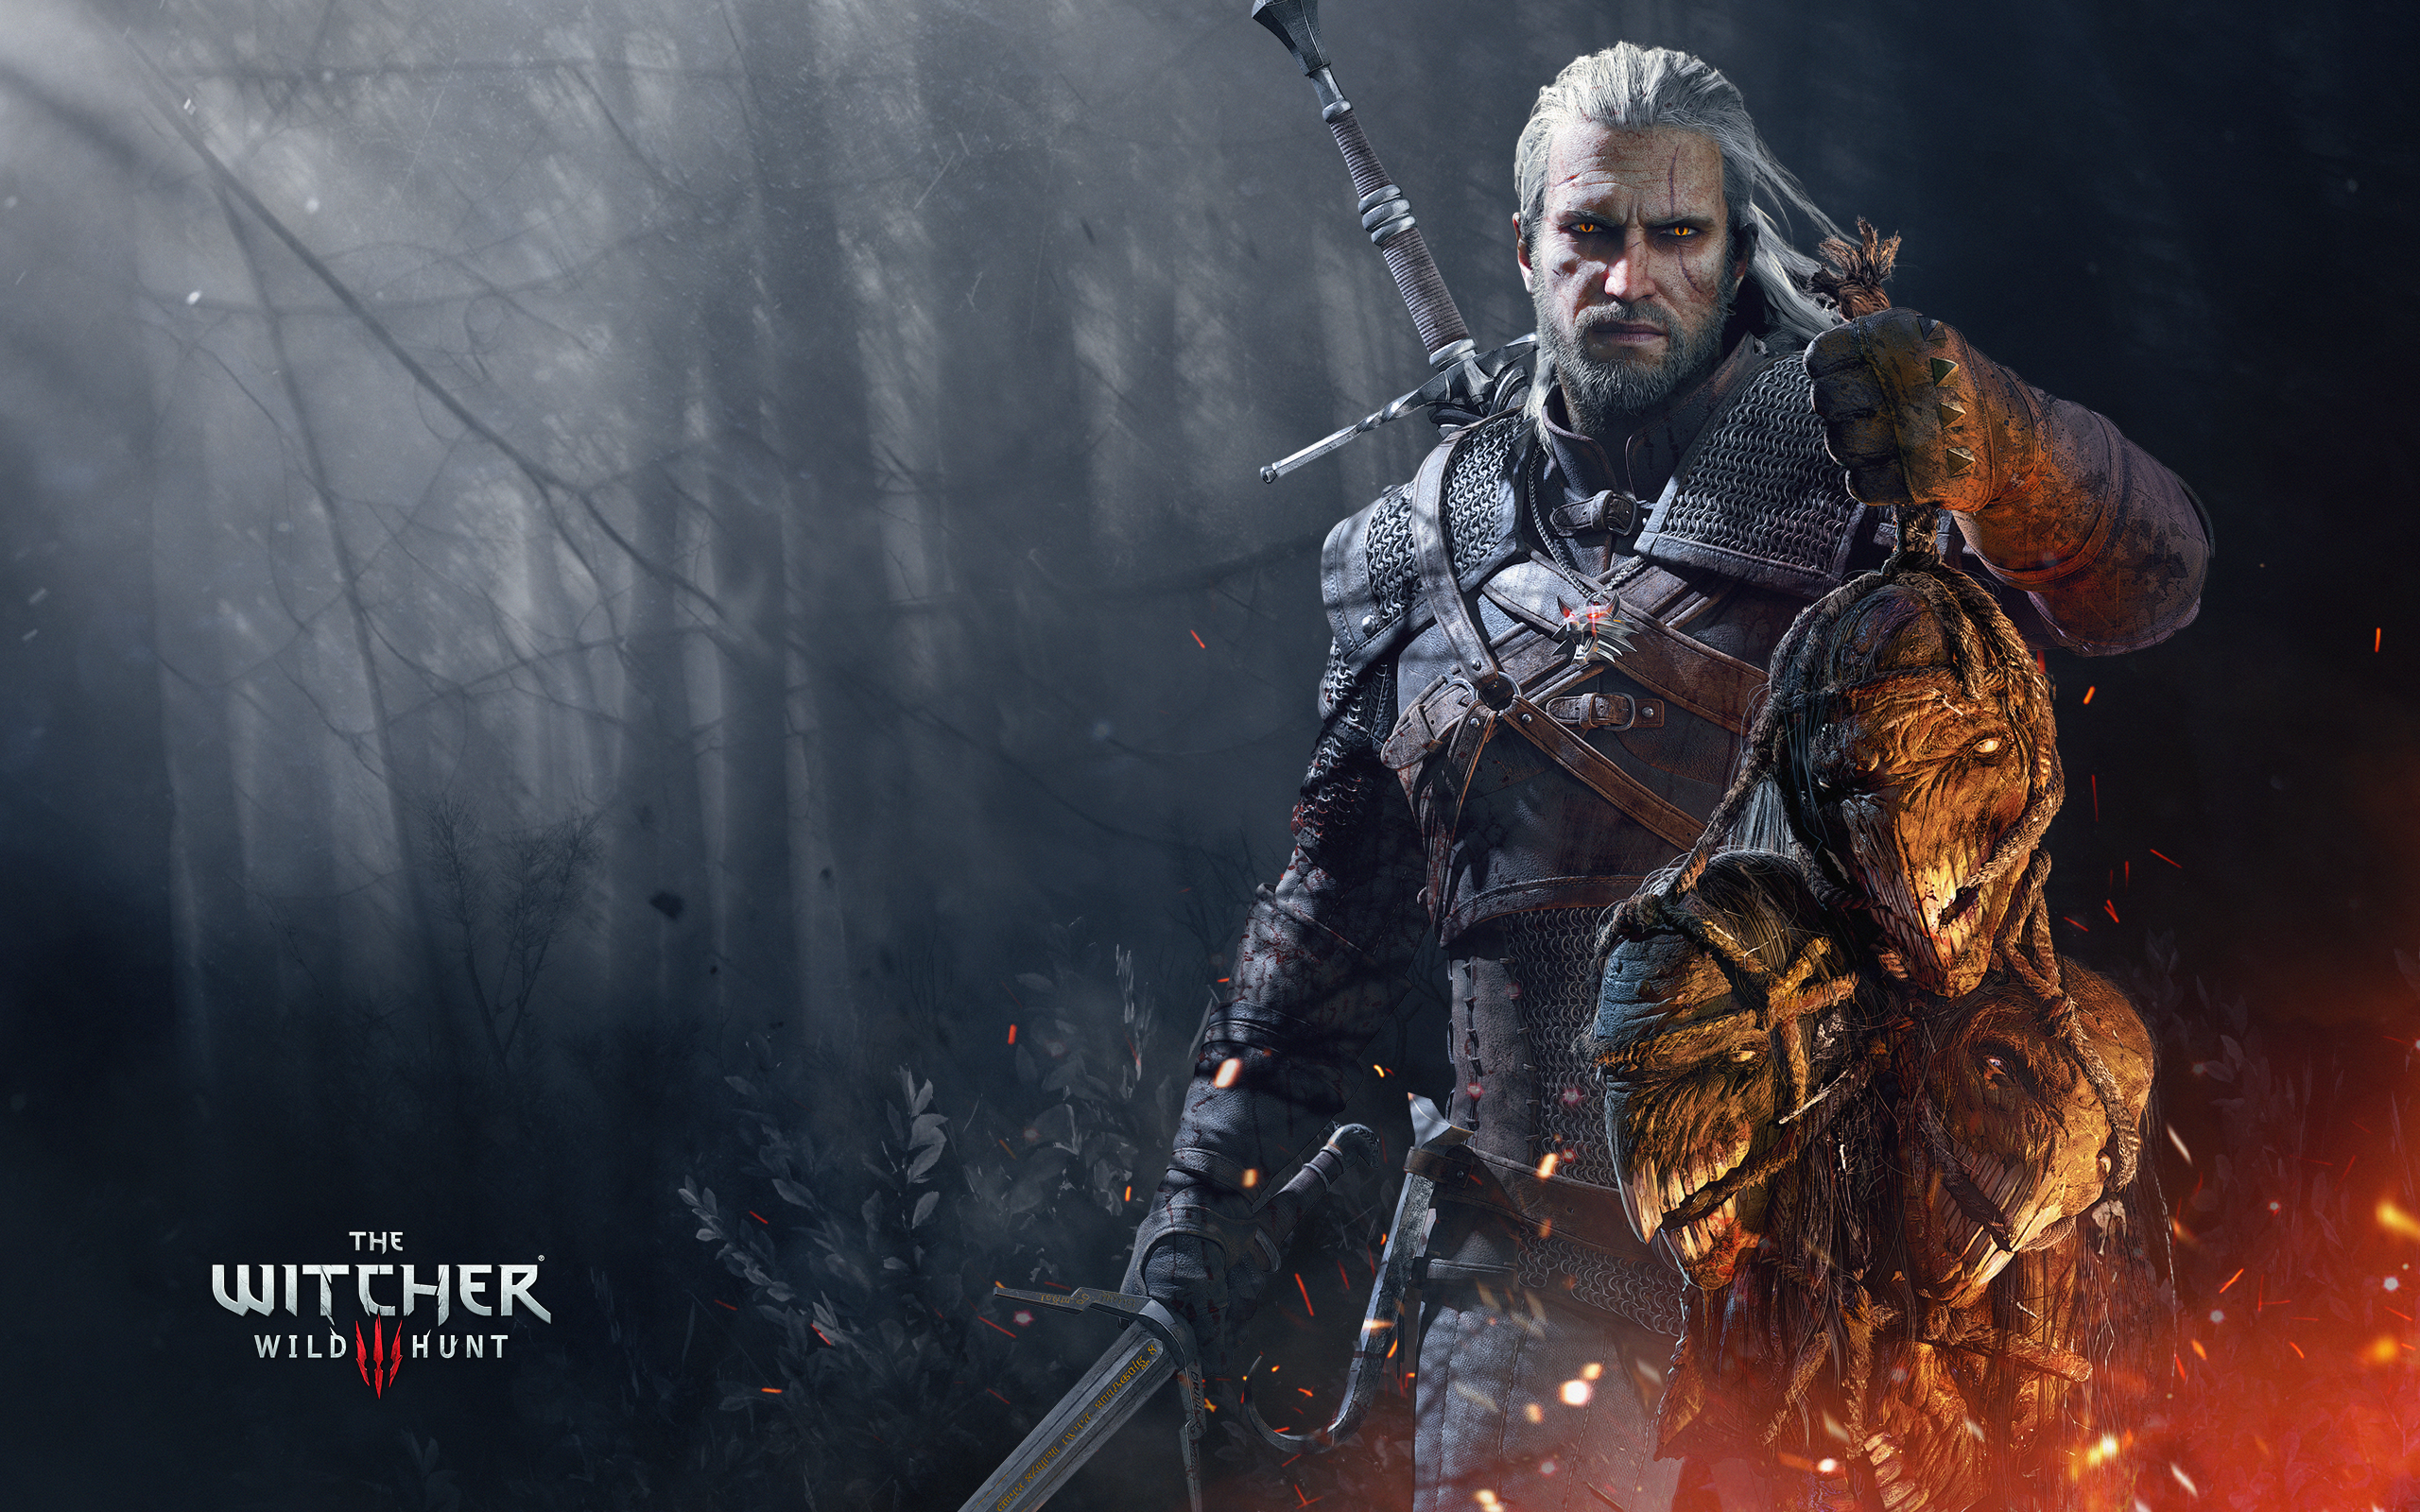 The Witcher 3 Wallpaper: Geralt of Rivia